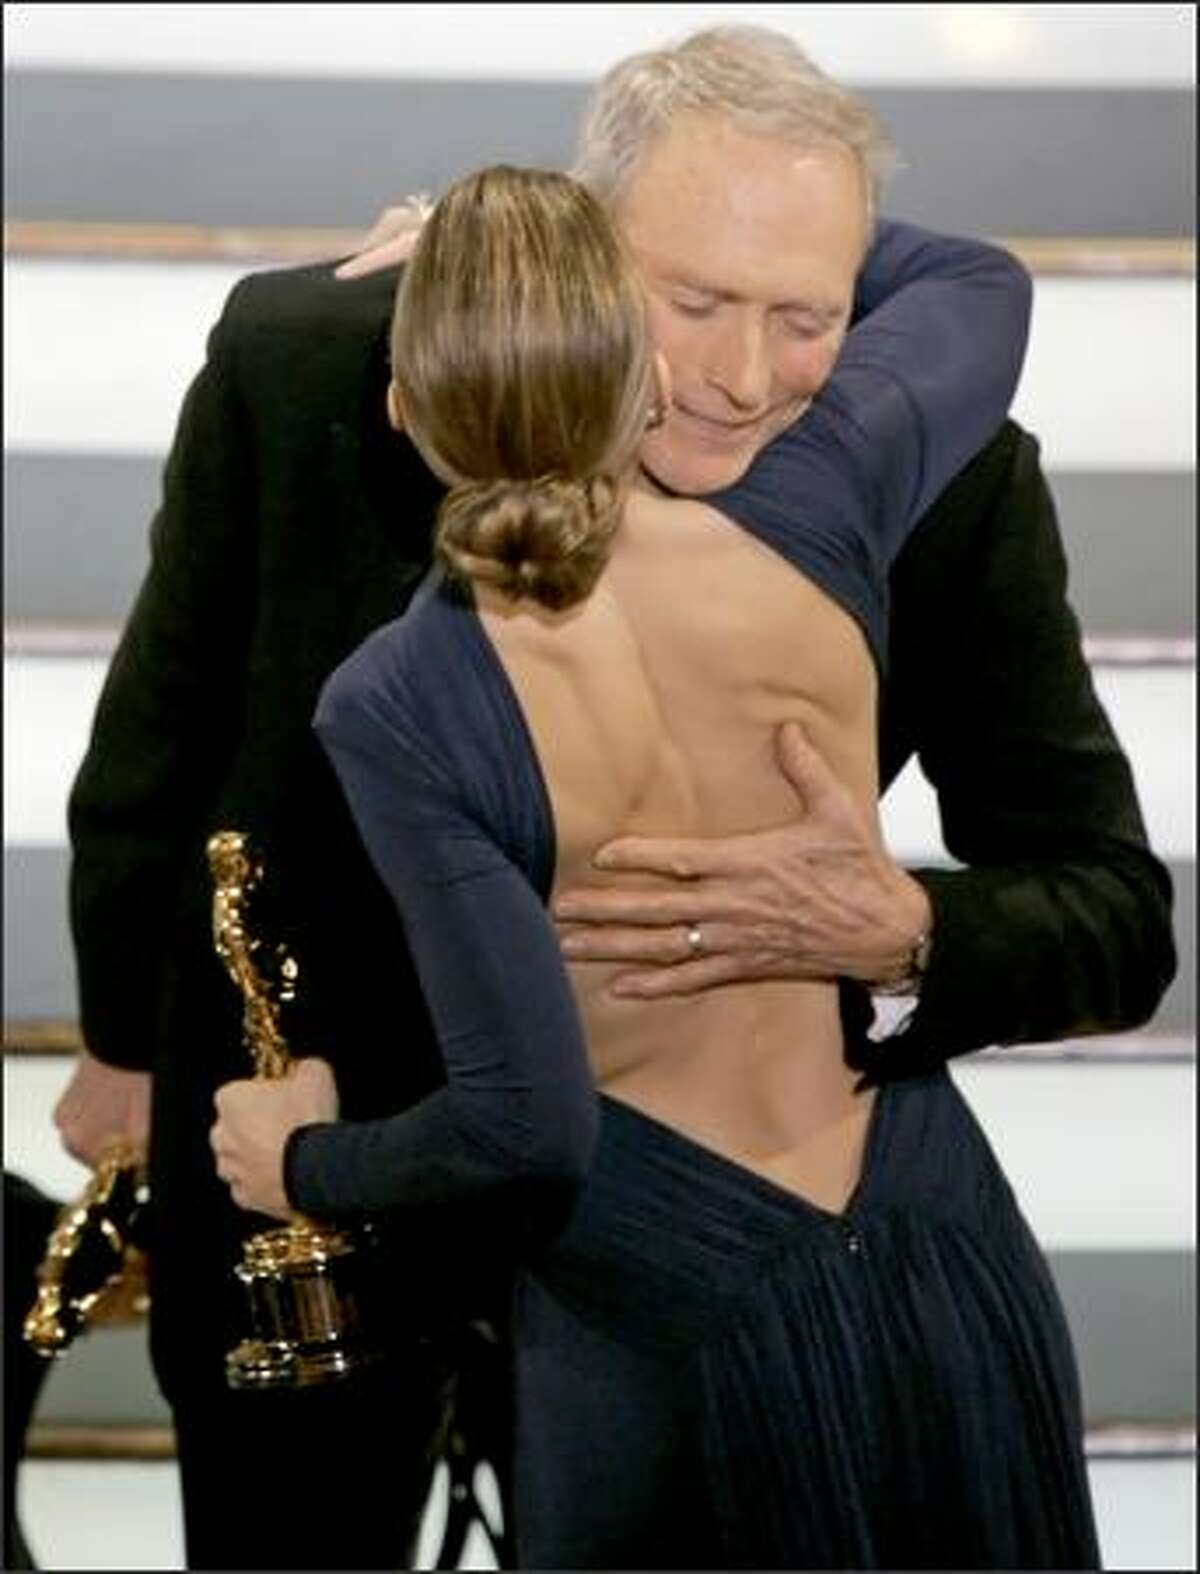 Director Clint Eastwood is congratulated by his film's star, Hilary Swank, before accepting the Oscar for best director for his work on